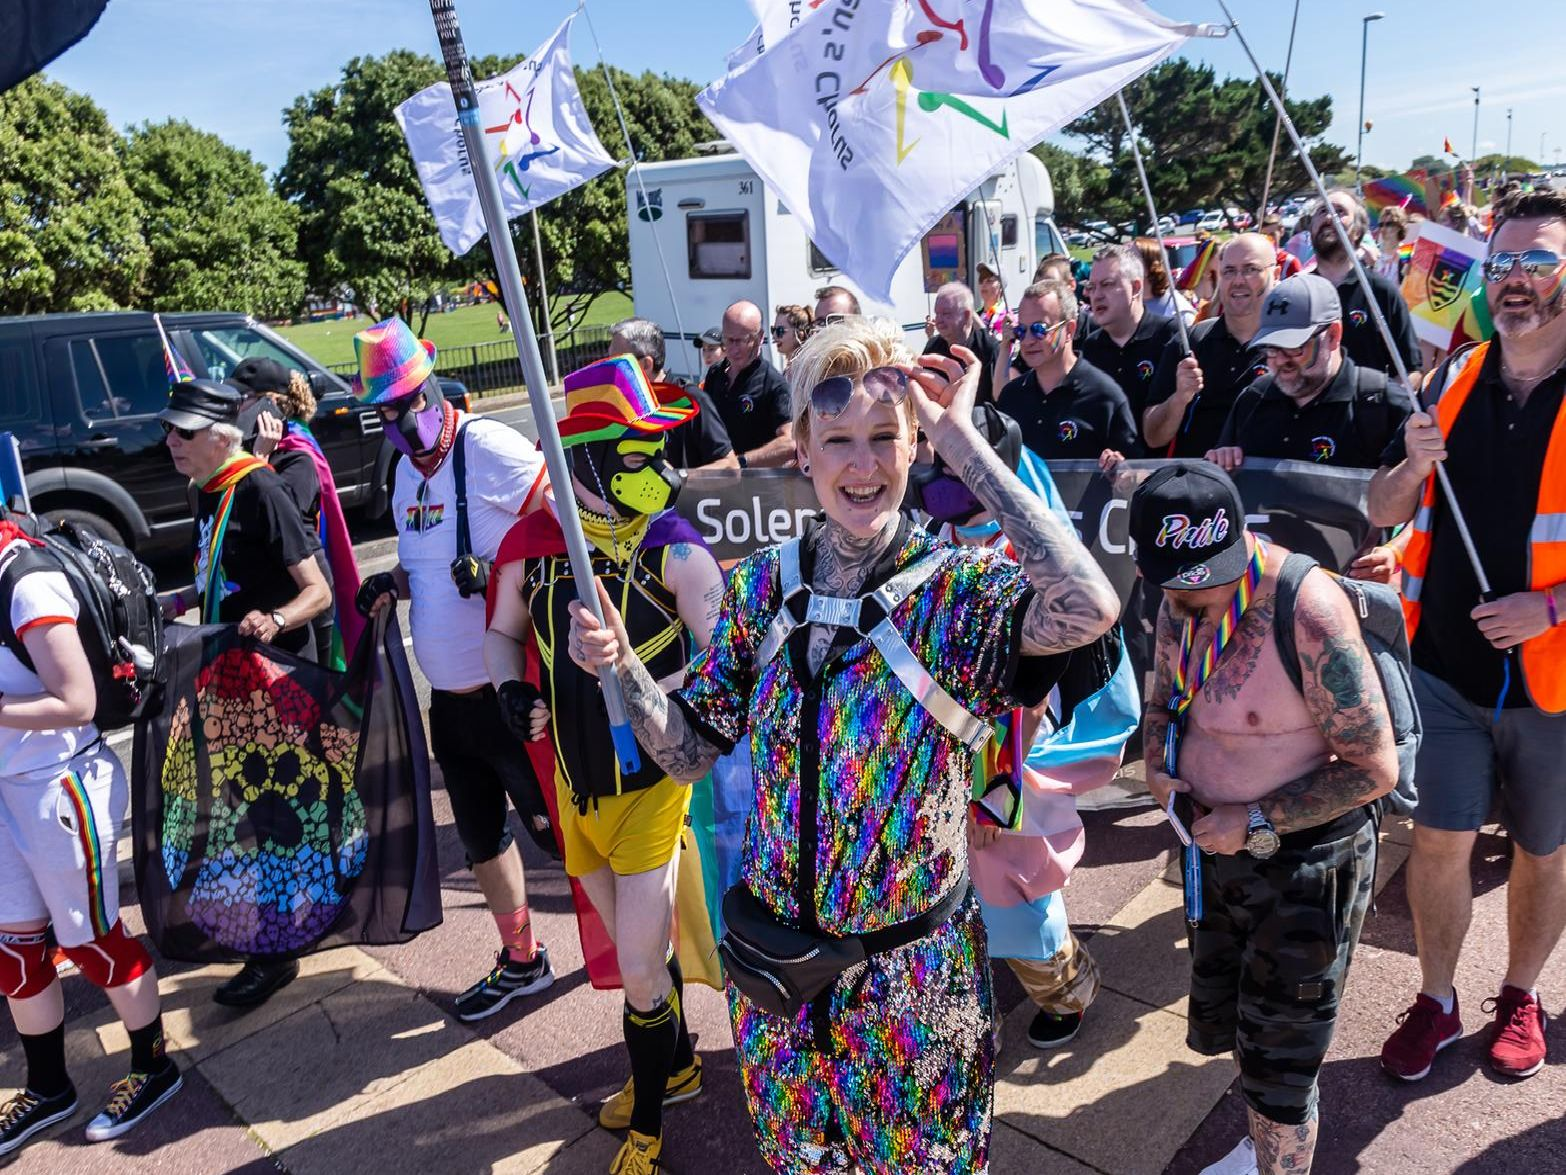 Portsmouth Pride 2019 by Johnny Black'www.johnnyblackphotography.co.uk'www.facebook.com/Johnnyblackphotography